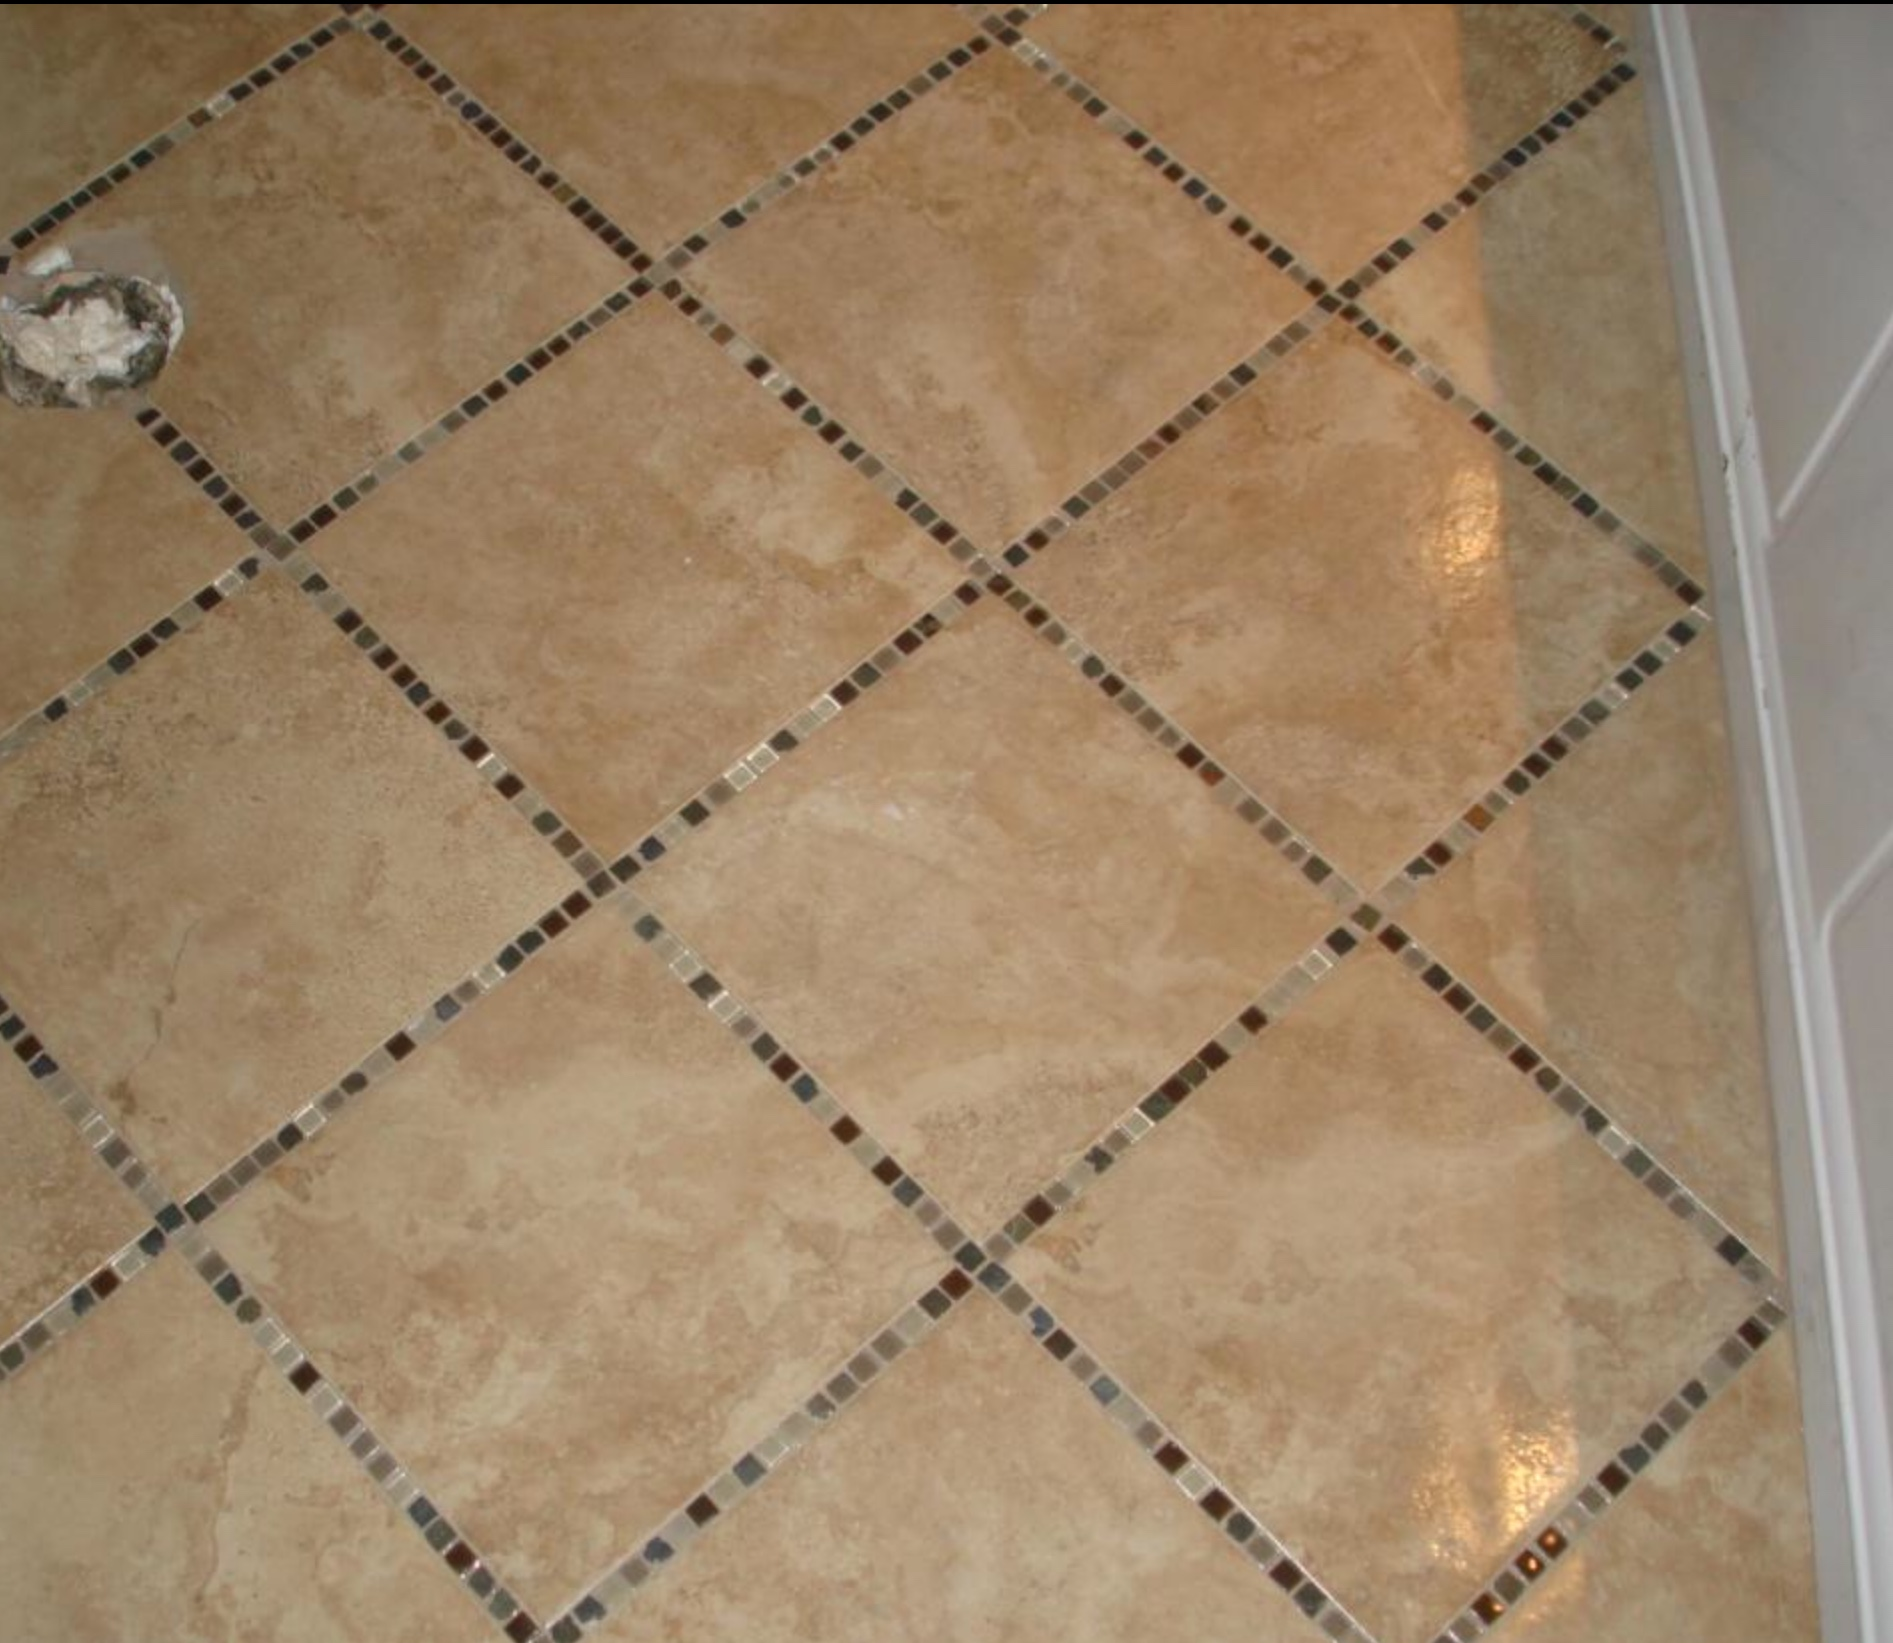 How Large Should Grout Lines Be